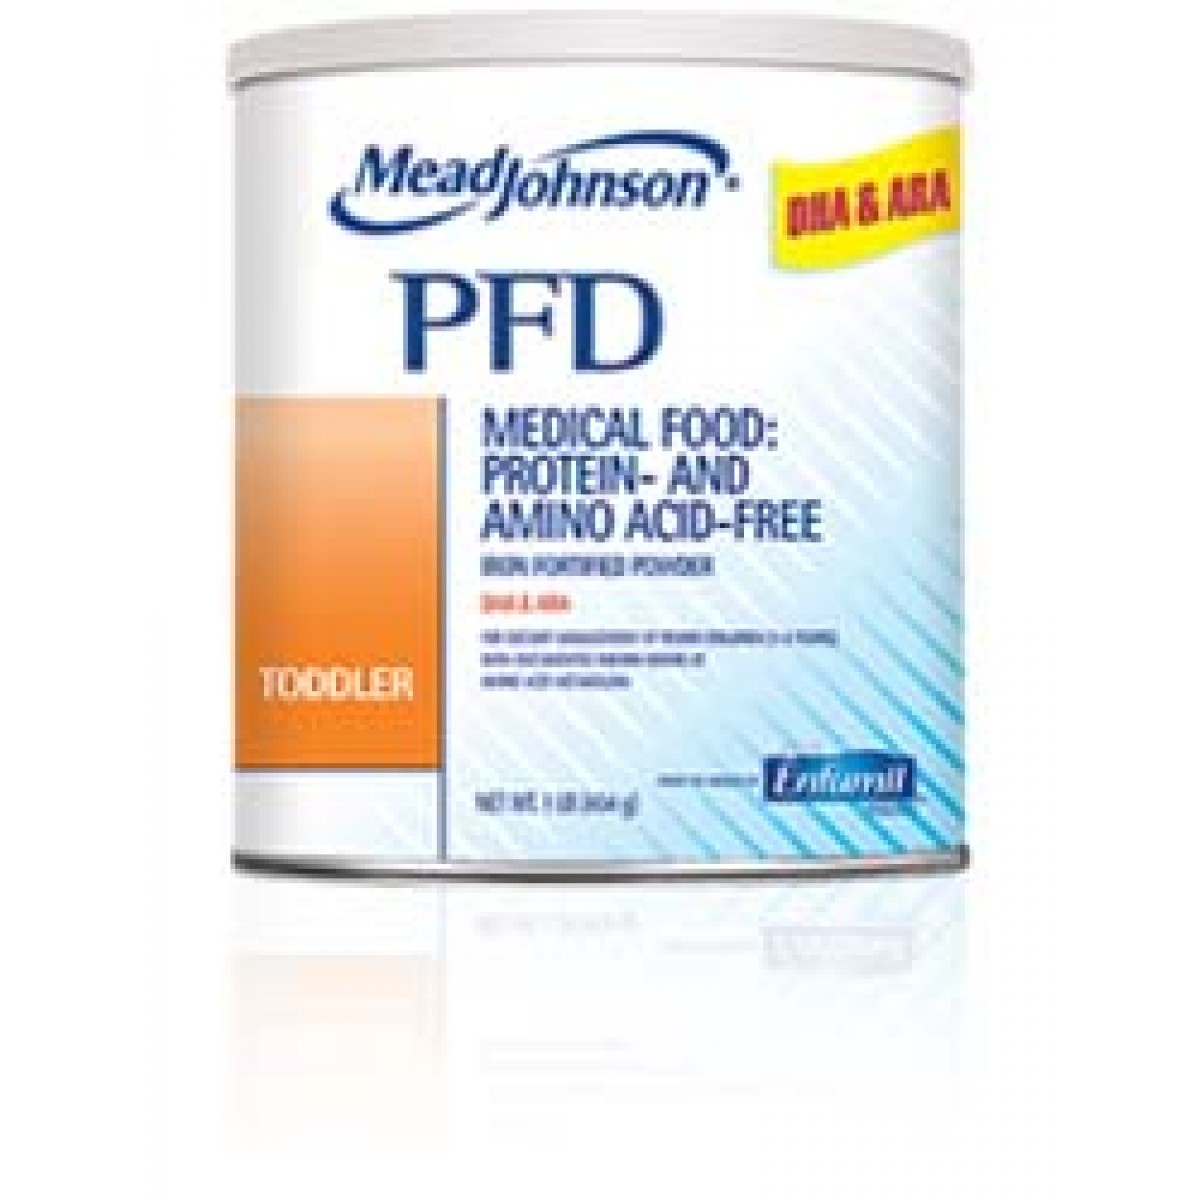 Protein And Amino Acid Free Medical Food For Children